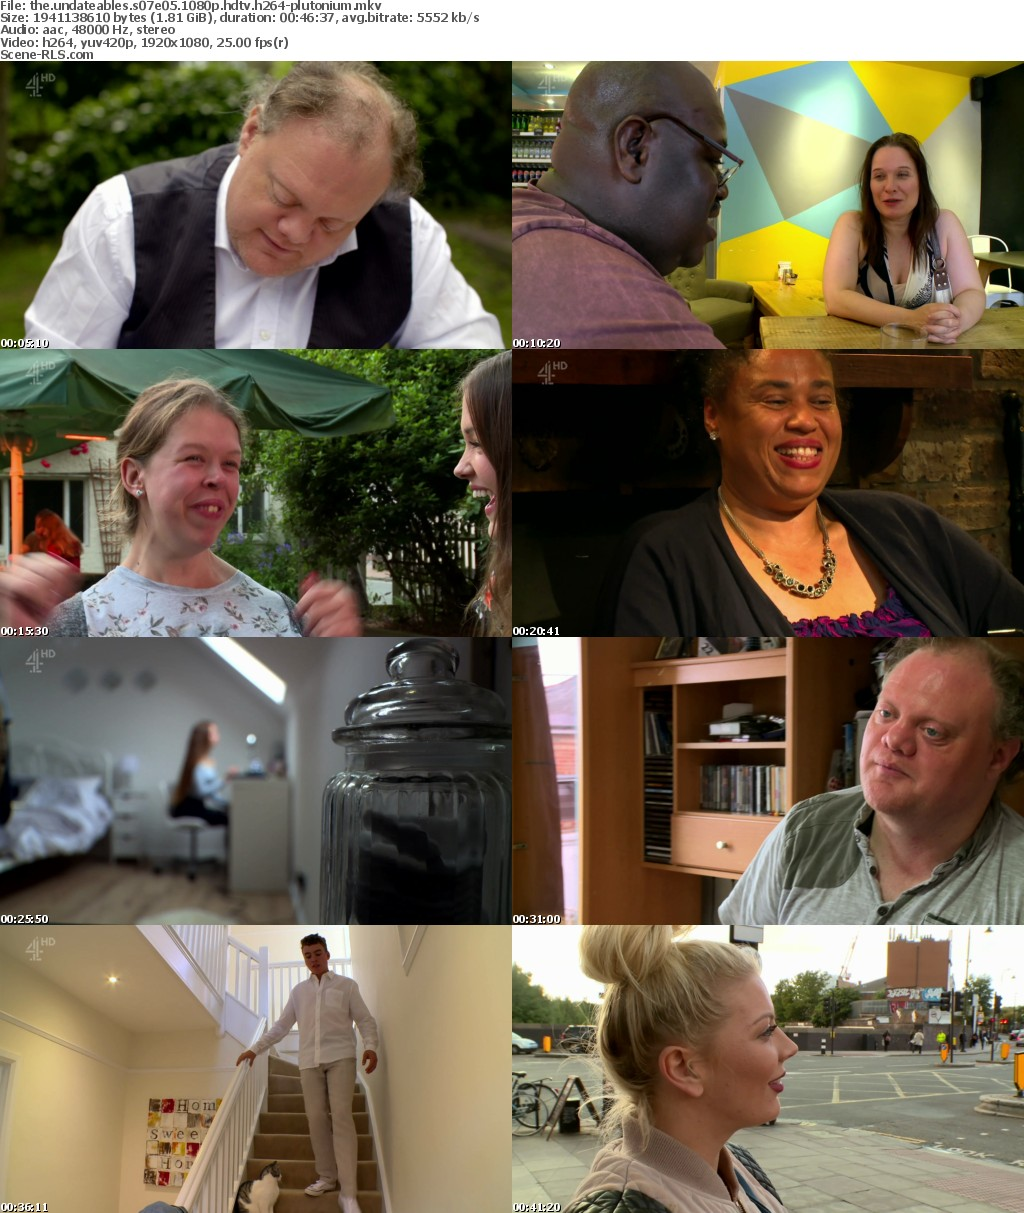 Undateables speed dating